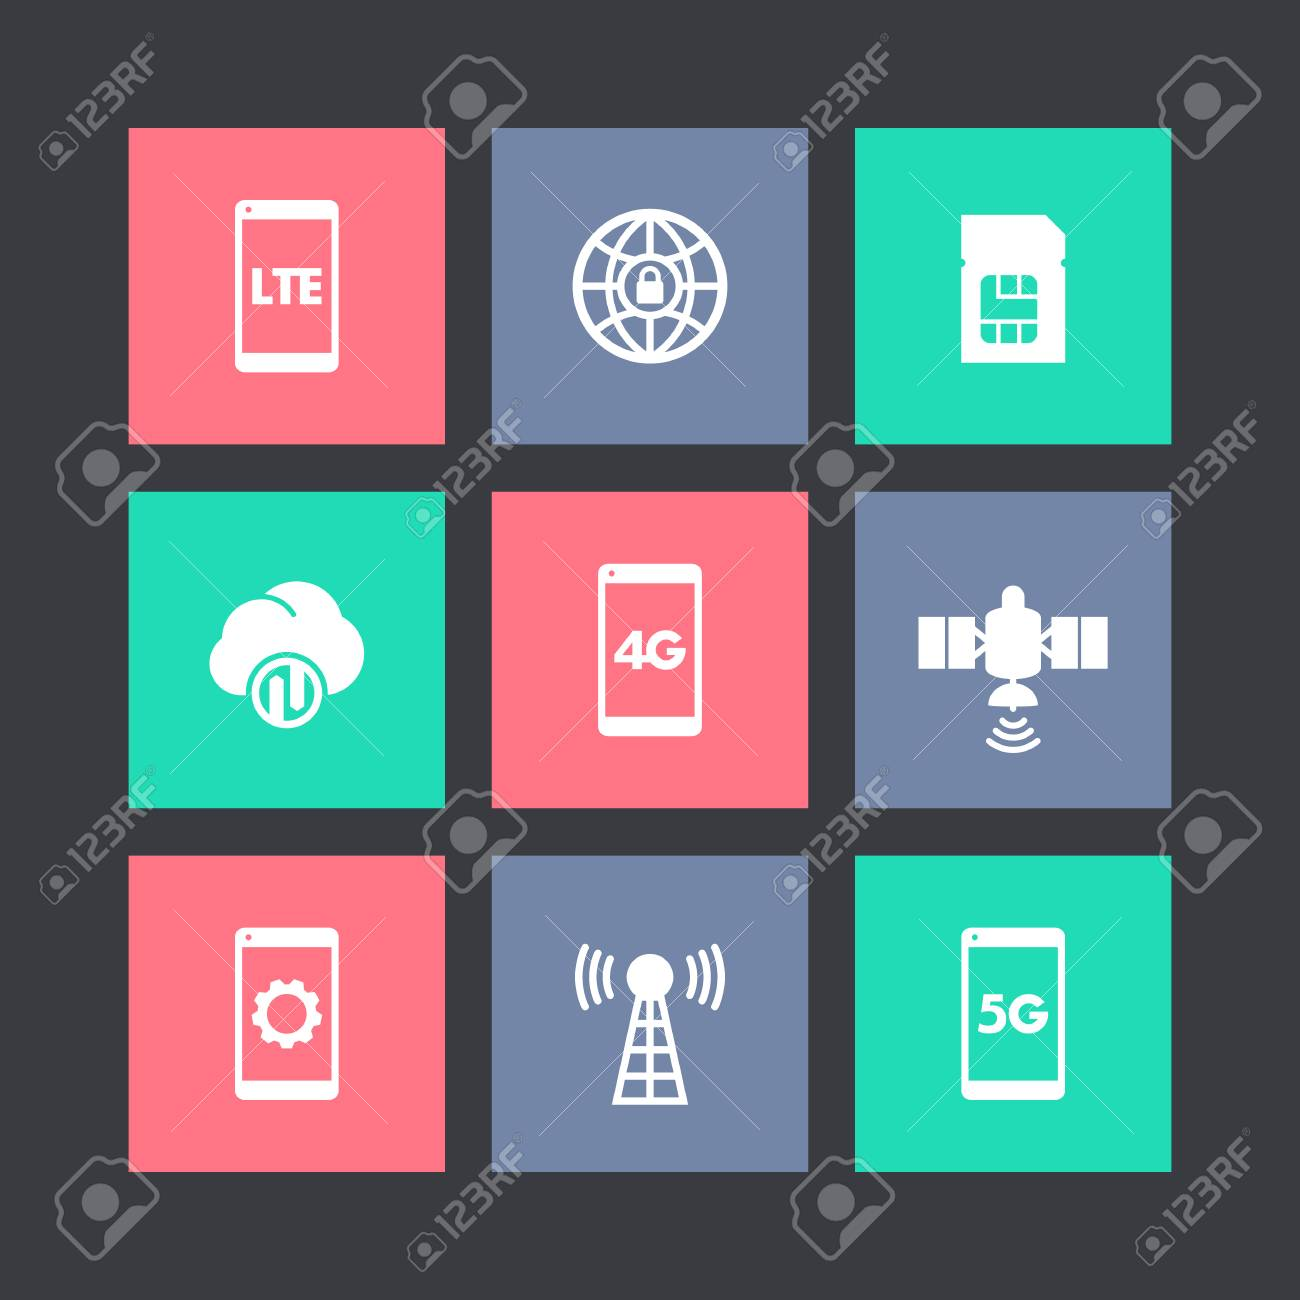 Wireless Technology Icons On Squares Lte 4g Network Pictogram